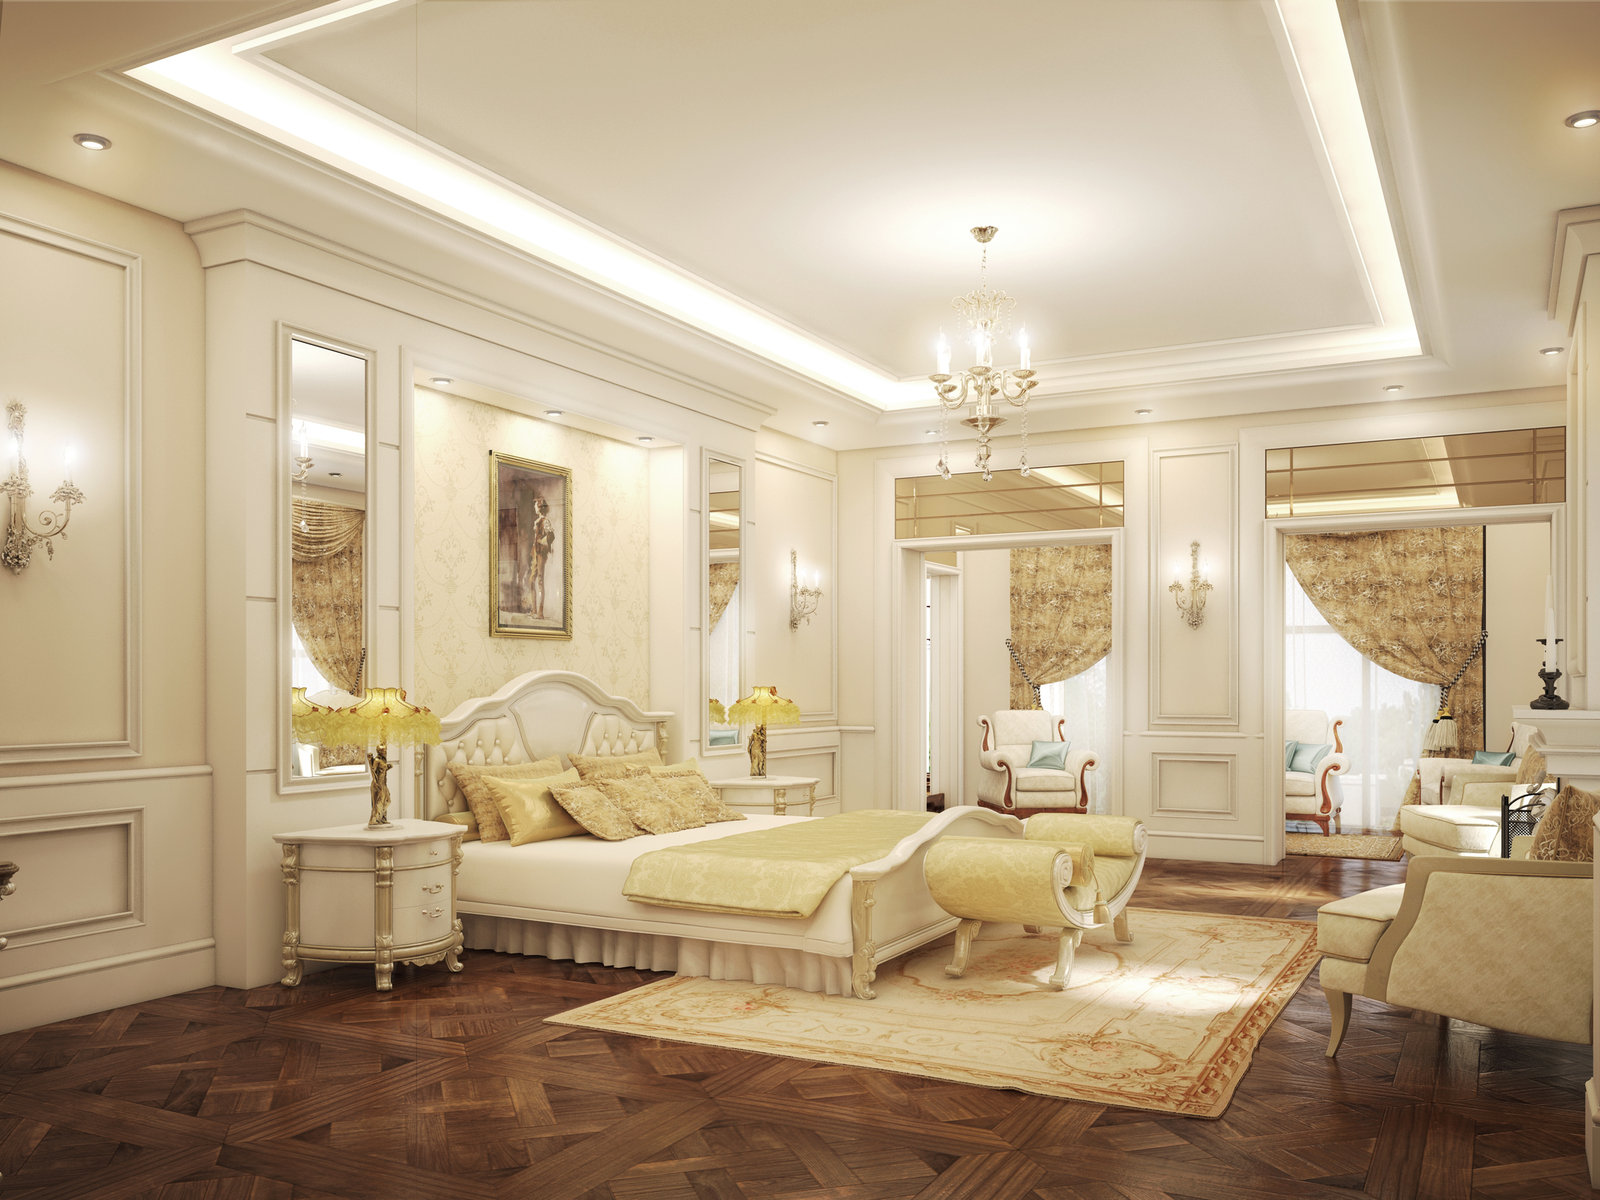 adhogg_builder_home_additions_master_suite-9